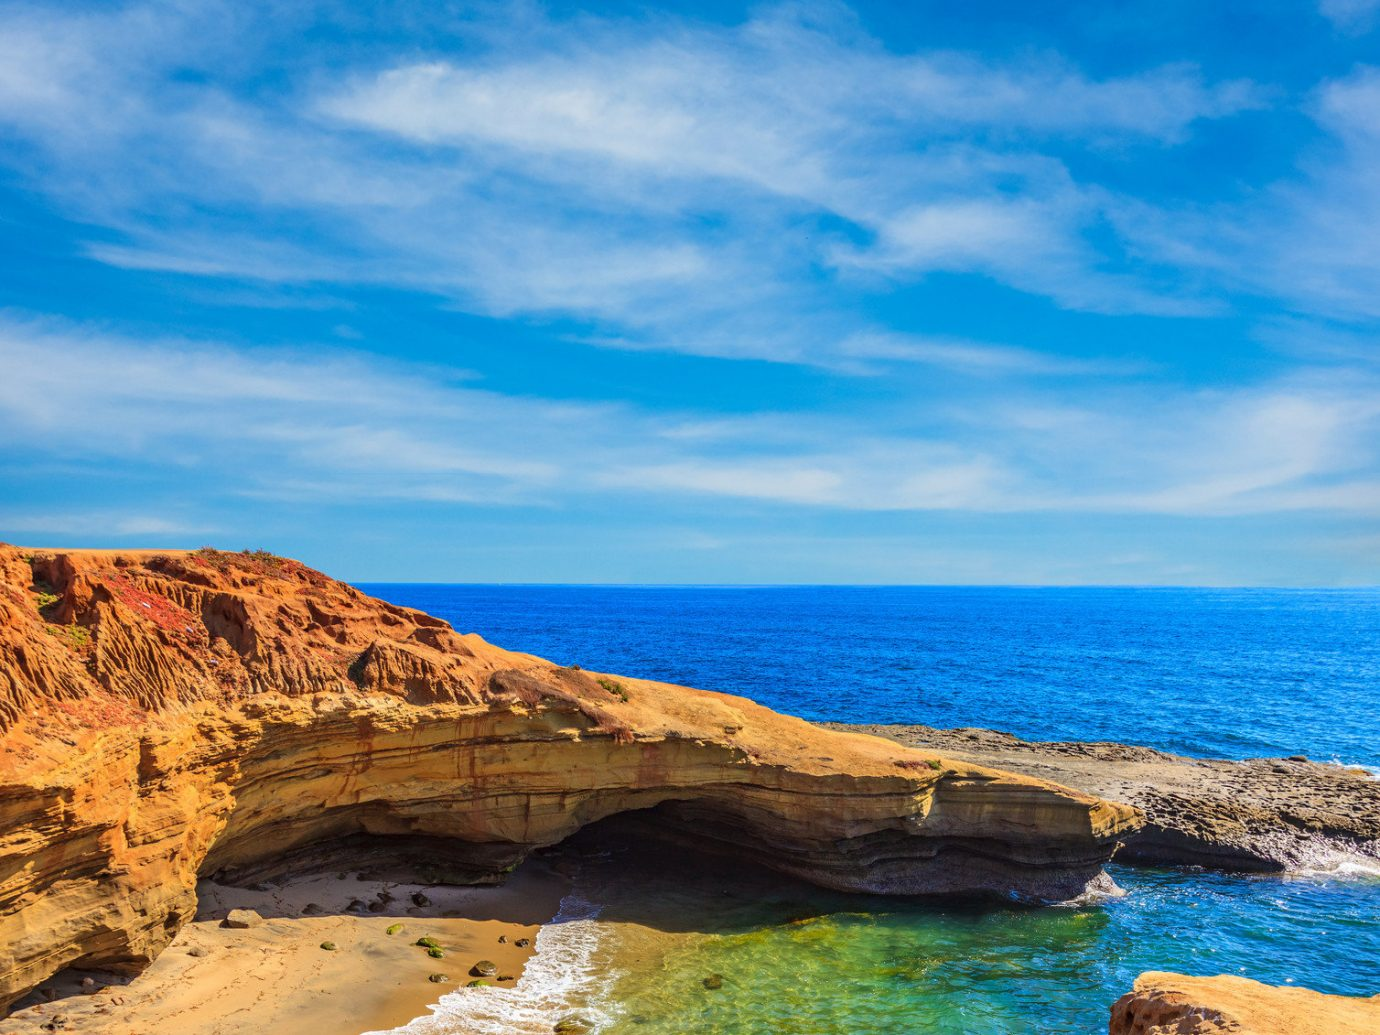 Trip Ideas sky outdoor water rock Nature Coast shore Sea body of water mountain geographical feature landform Beach Ocean cloud canyon valley horizon cliff vacation bay landscape rocky loch cove cape terrain sand wave material